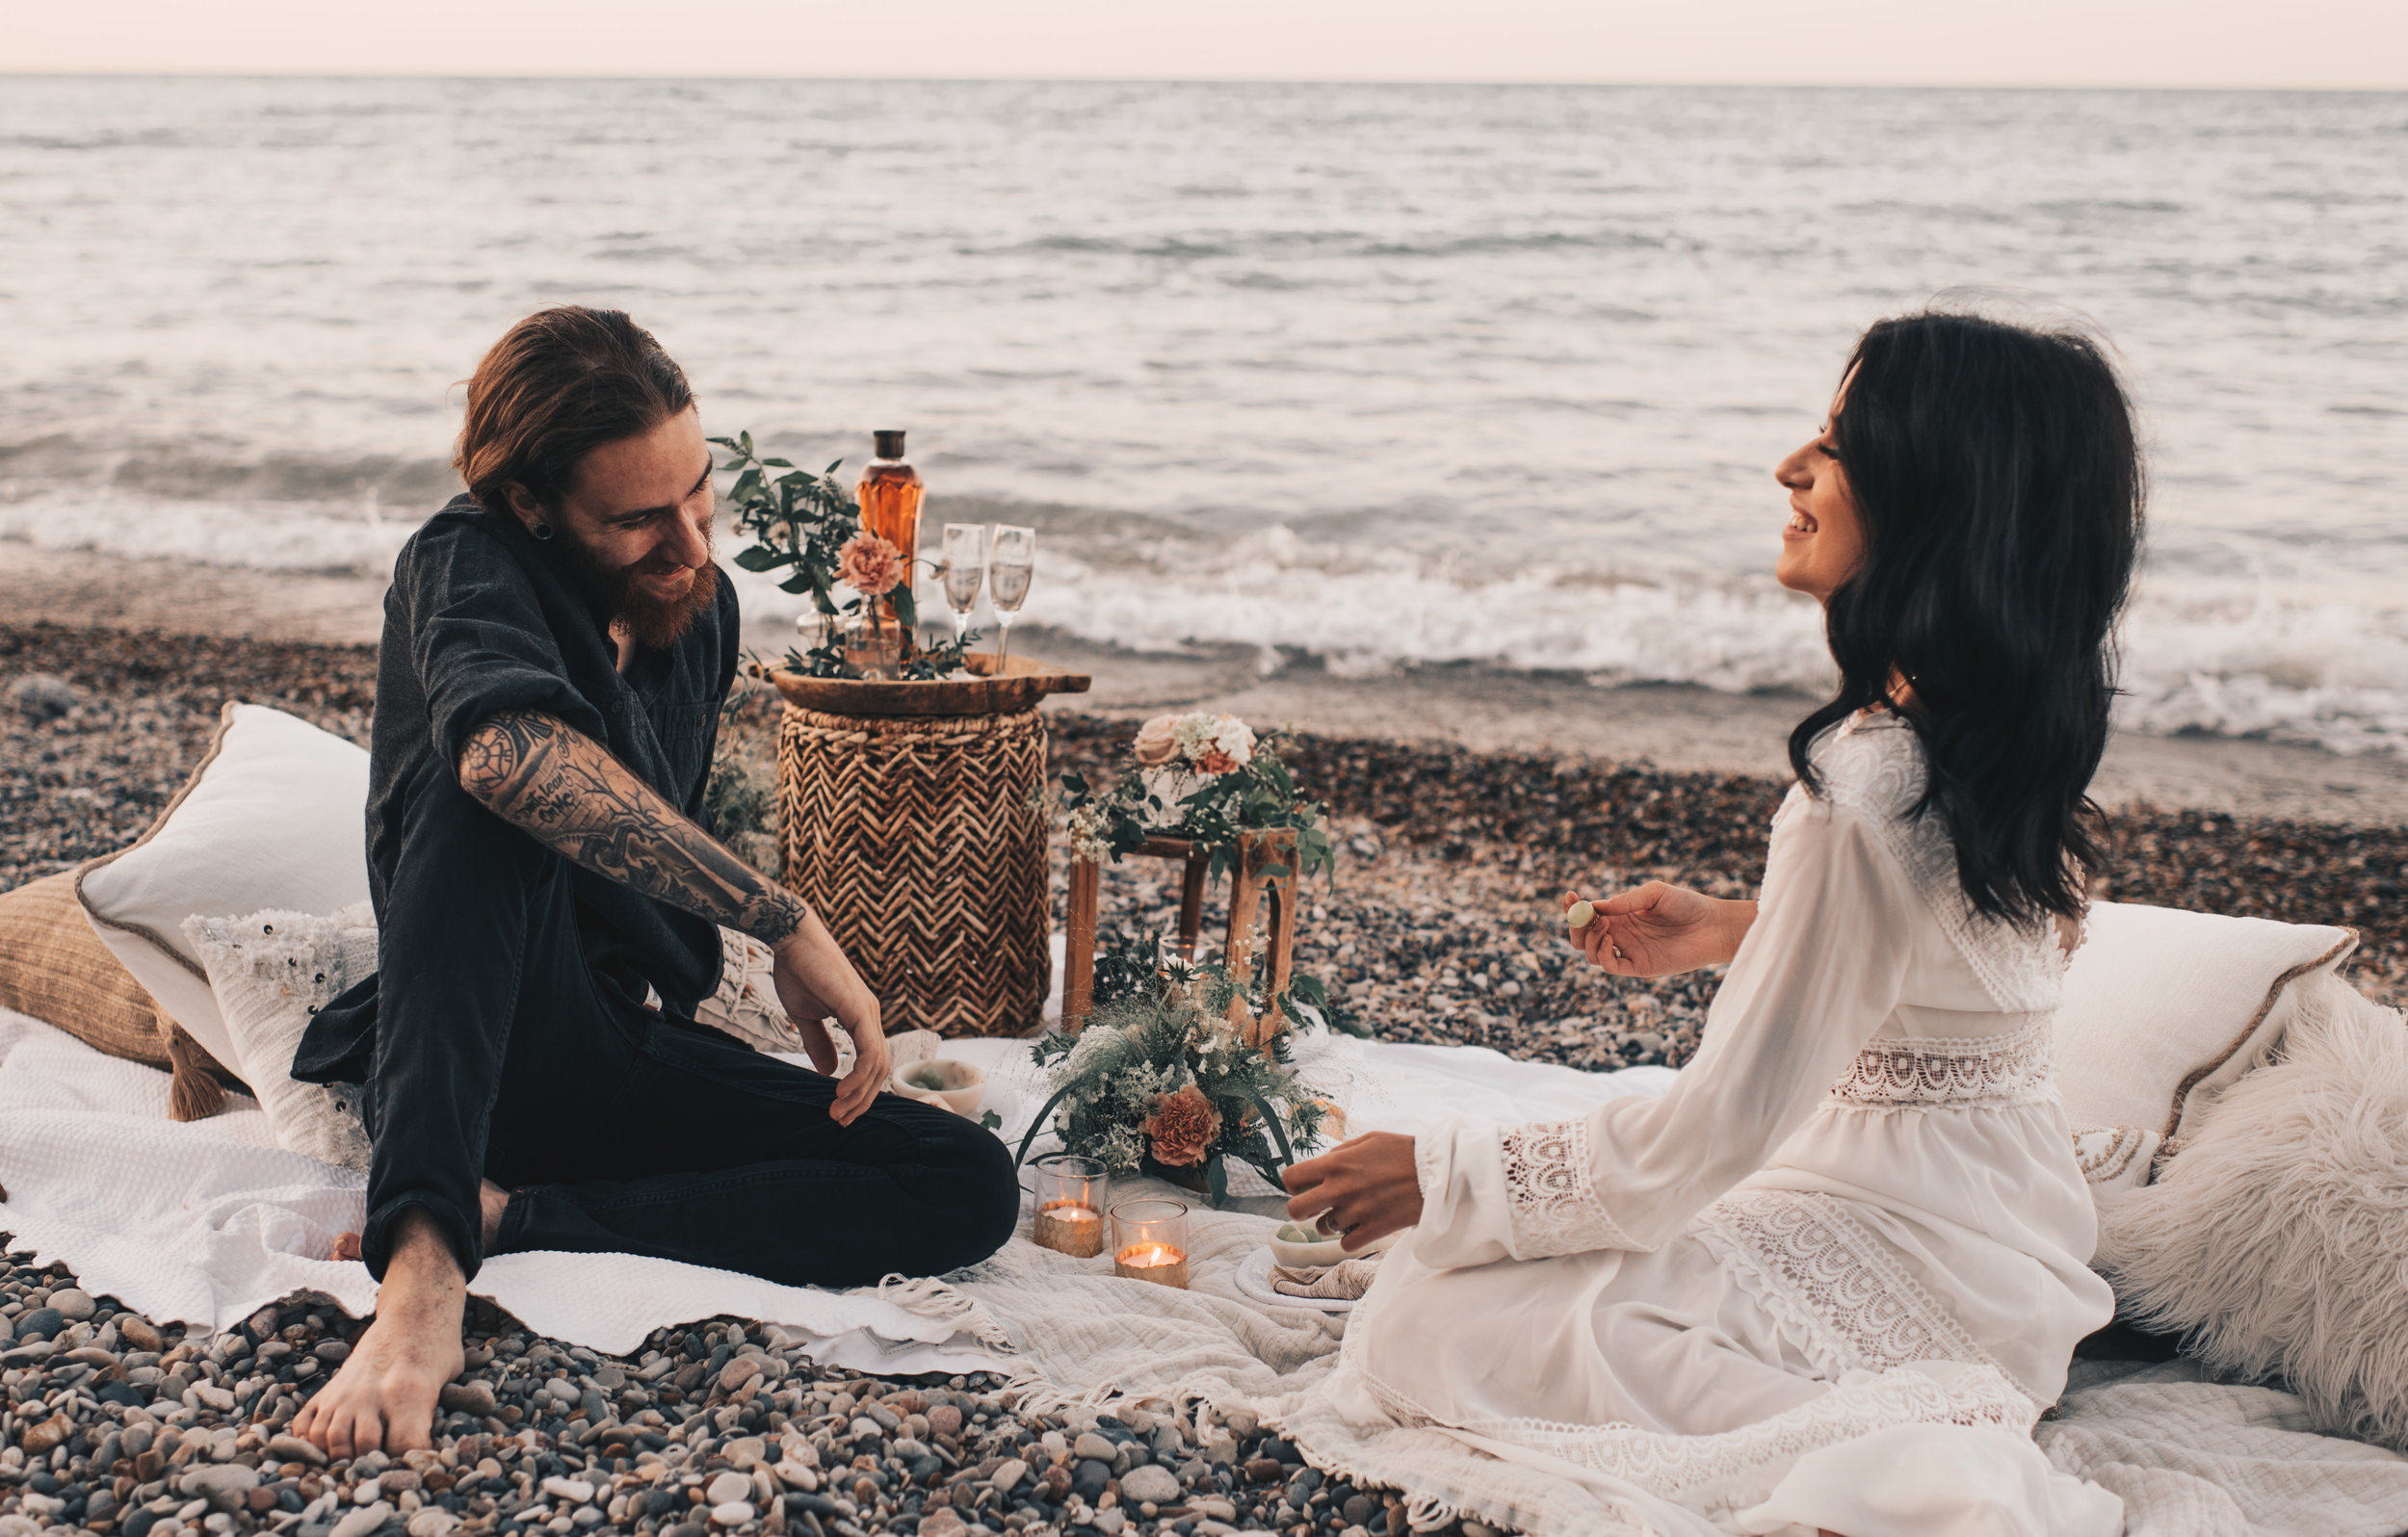 Lake Michigan Beach Session, Lake Michigan Beach Elopement, Summer Beach Elopement, Dreamy Beach Elopement, Illinois Beach Elopement, Indiana Dunes Elopement, Beach Picnic Elopement